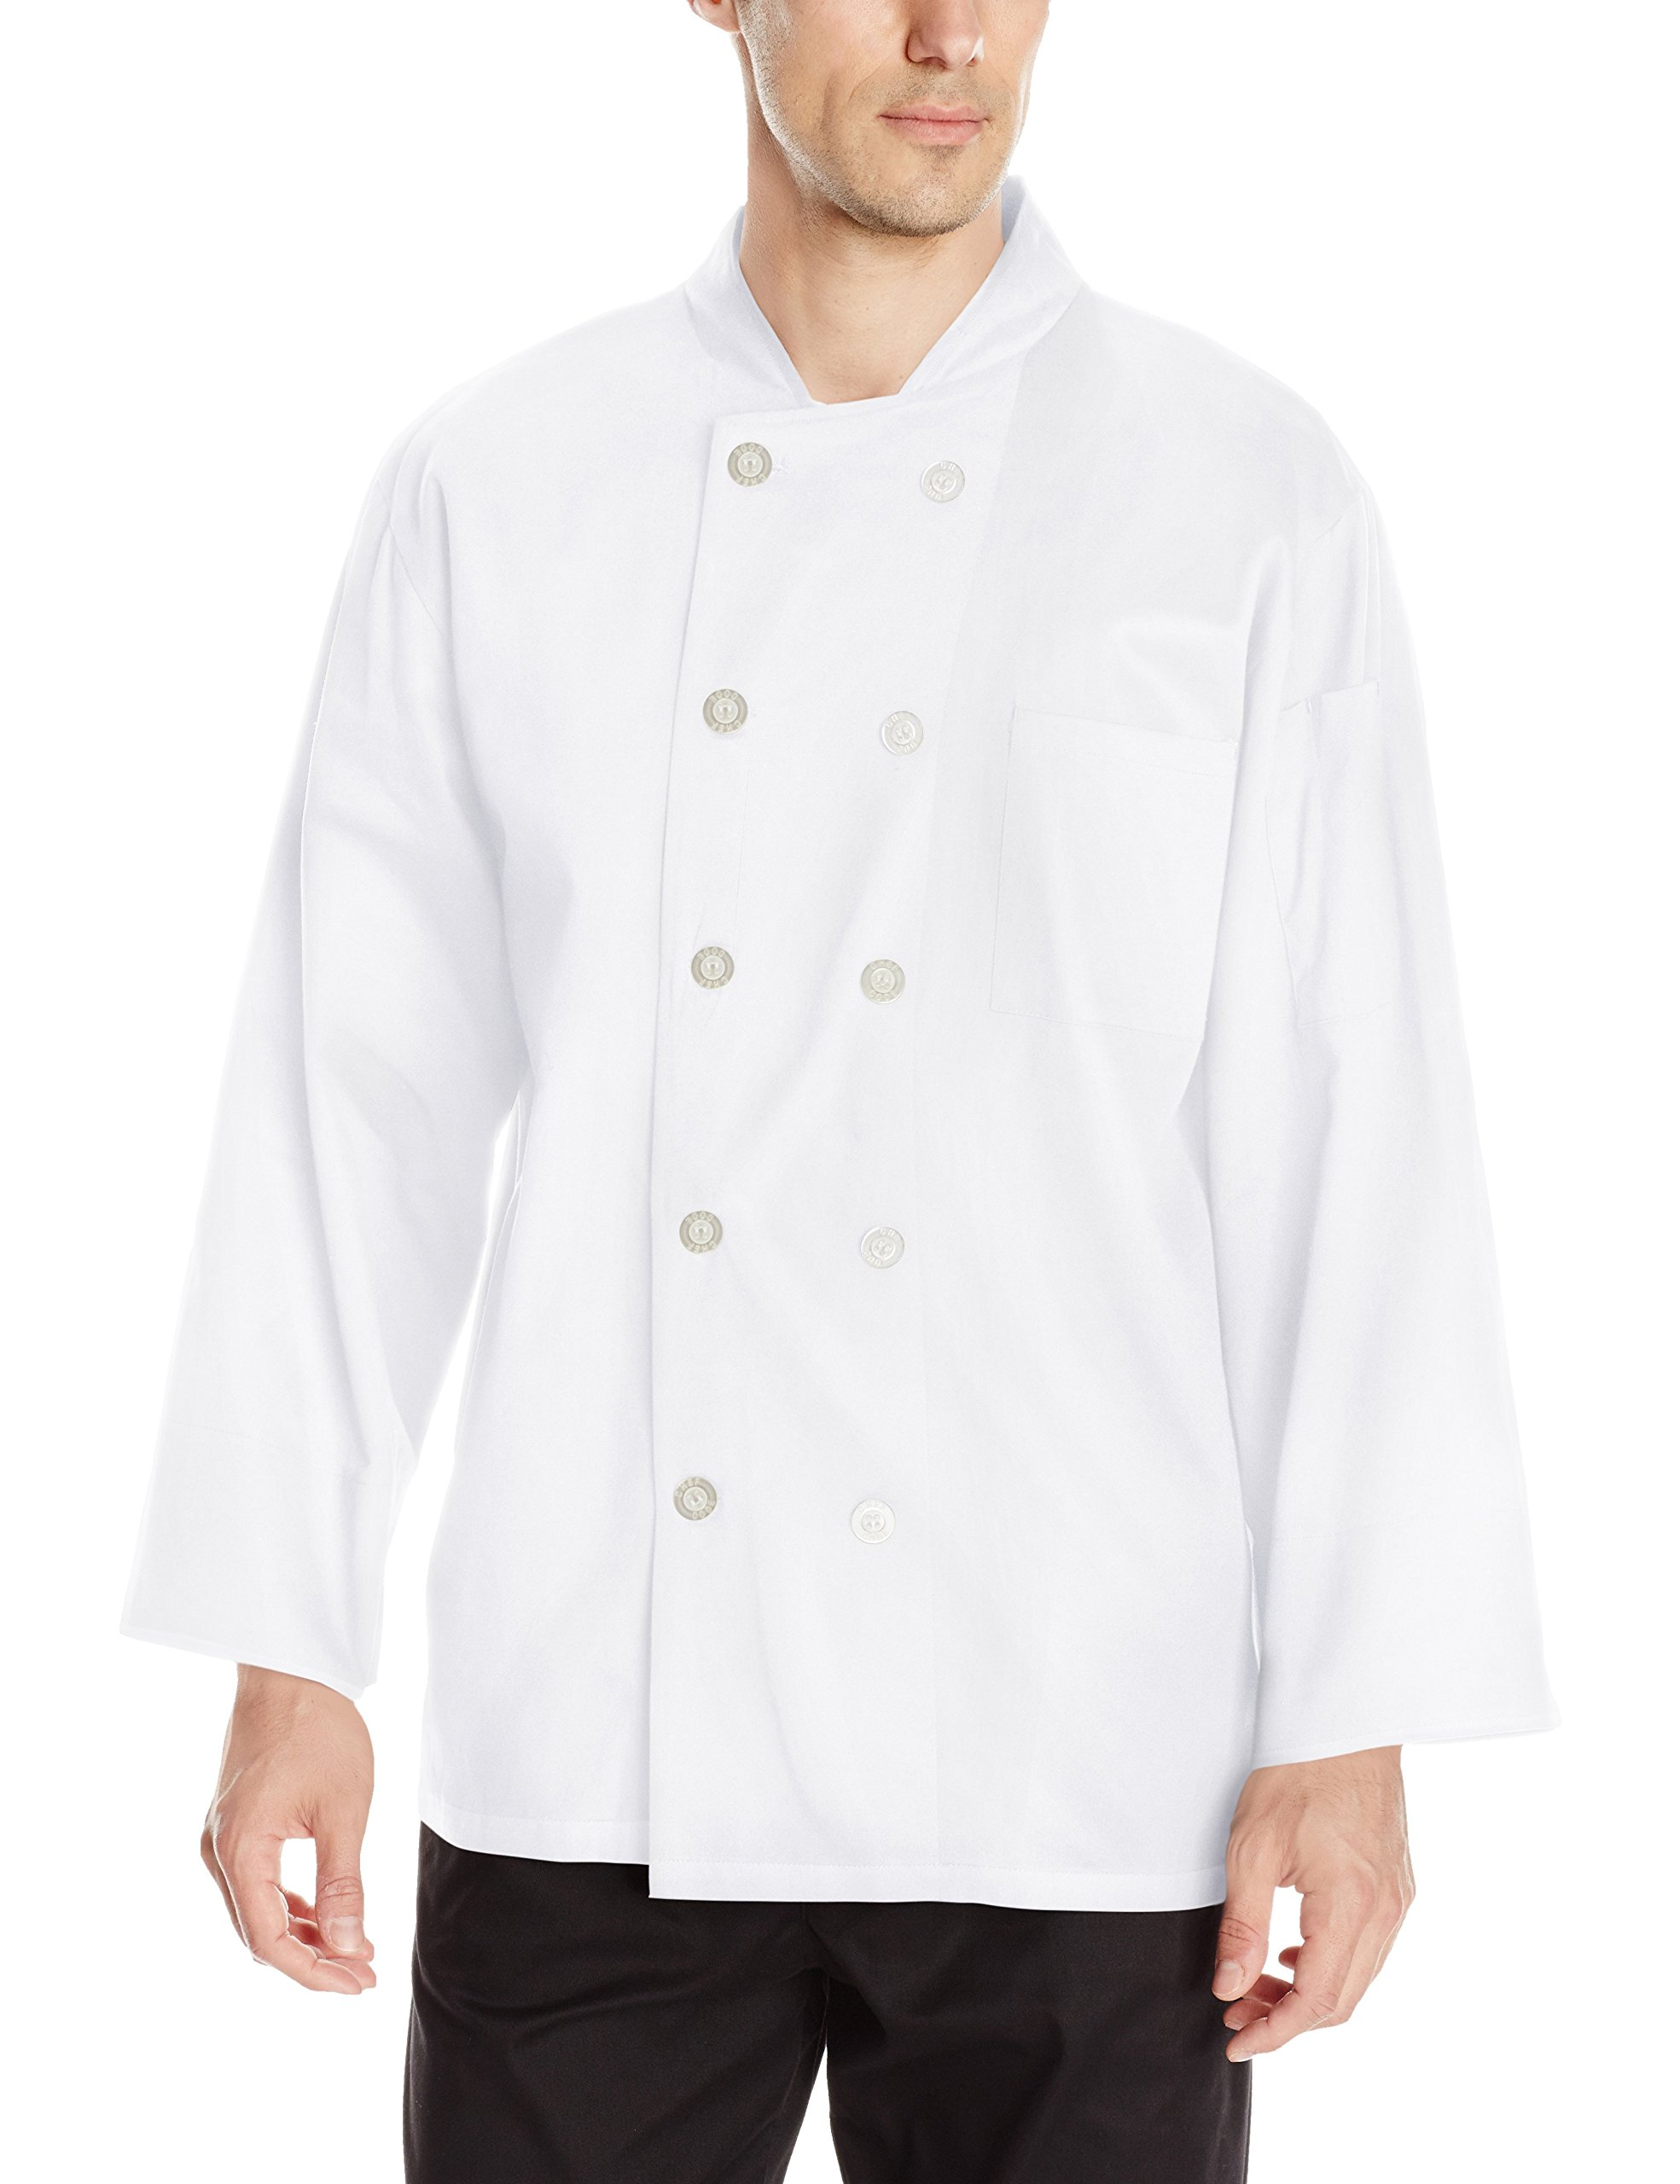 Chef Code Men's Classic 100% Premium Cotton Long Sleeve Coat, White, 2X-Large